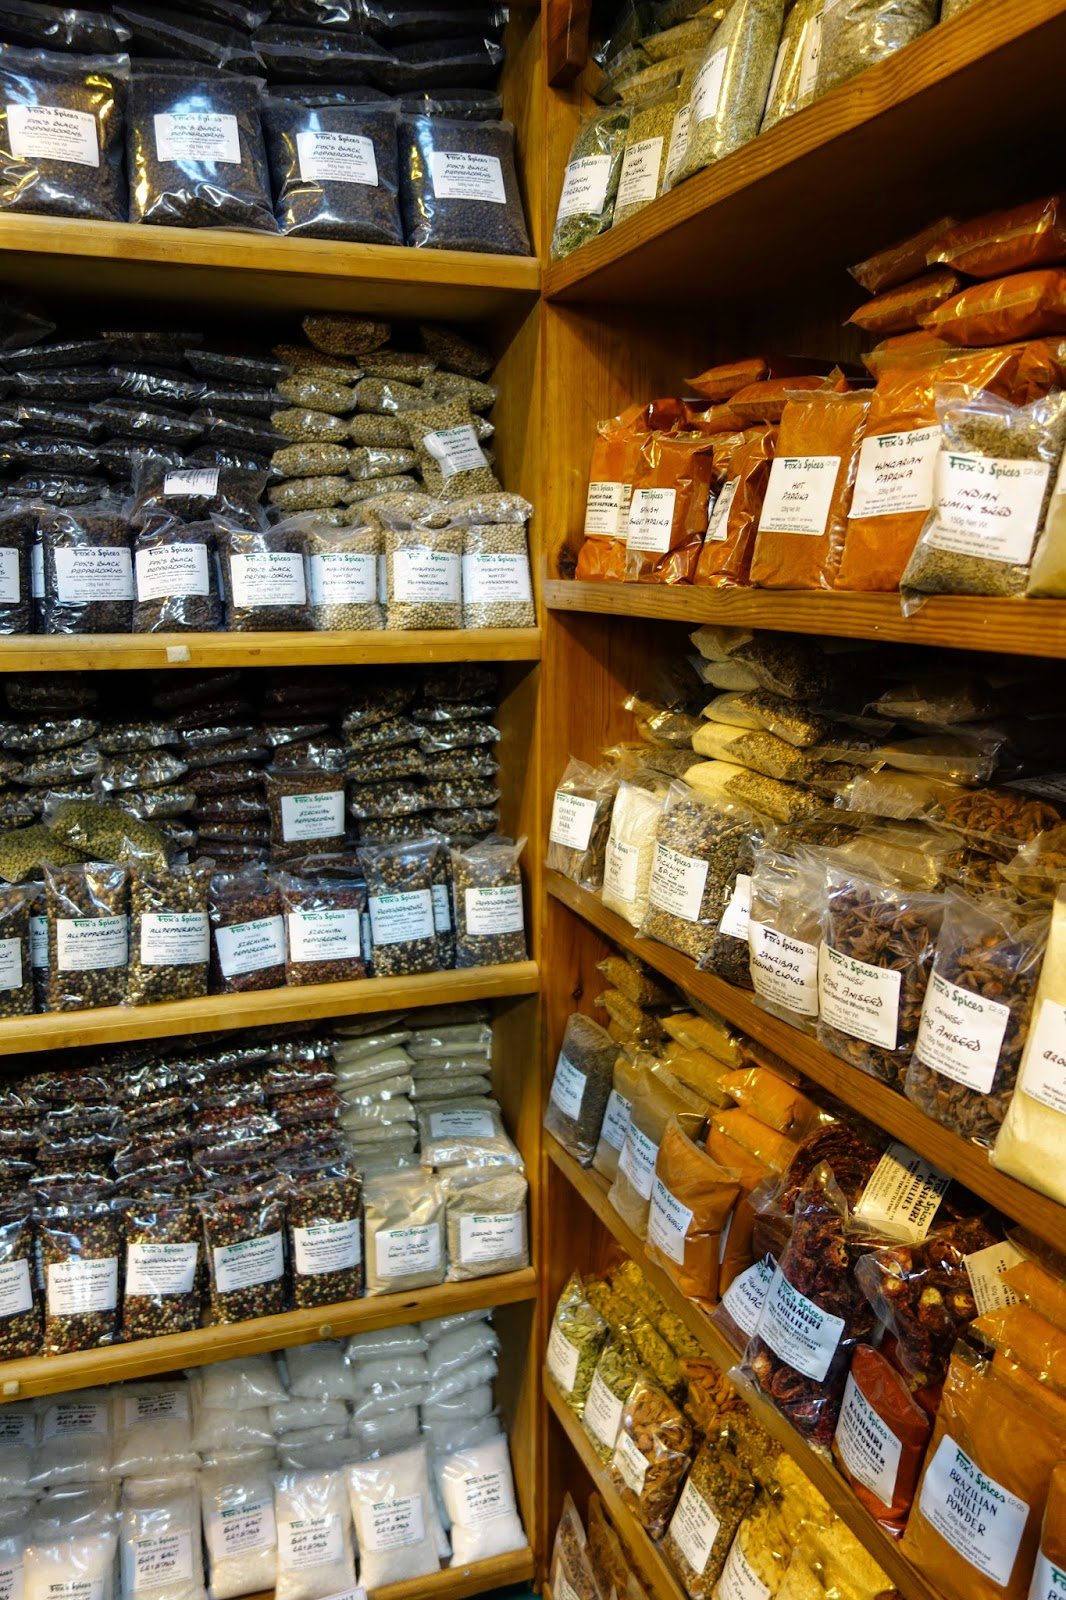 Fox's Spices on shelves at the Good Food Show Winter